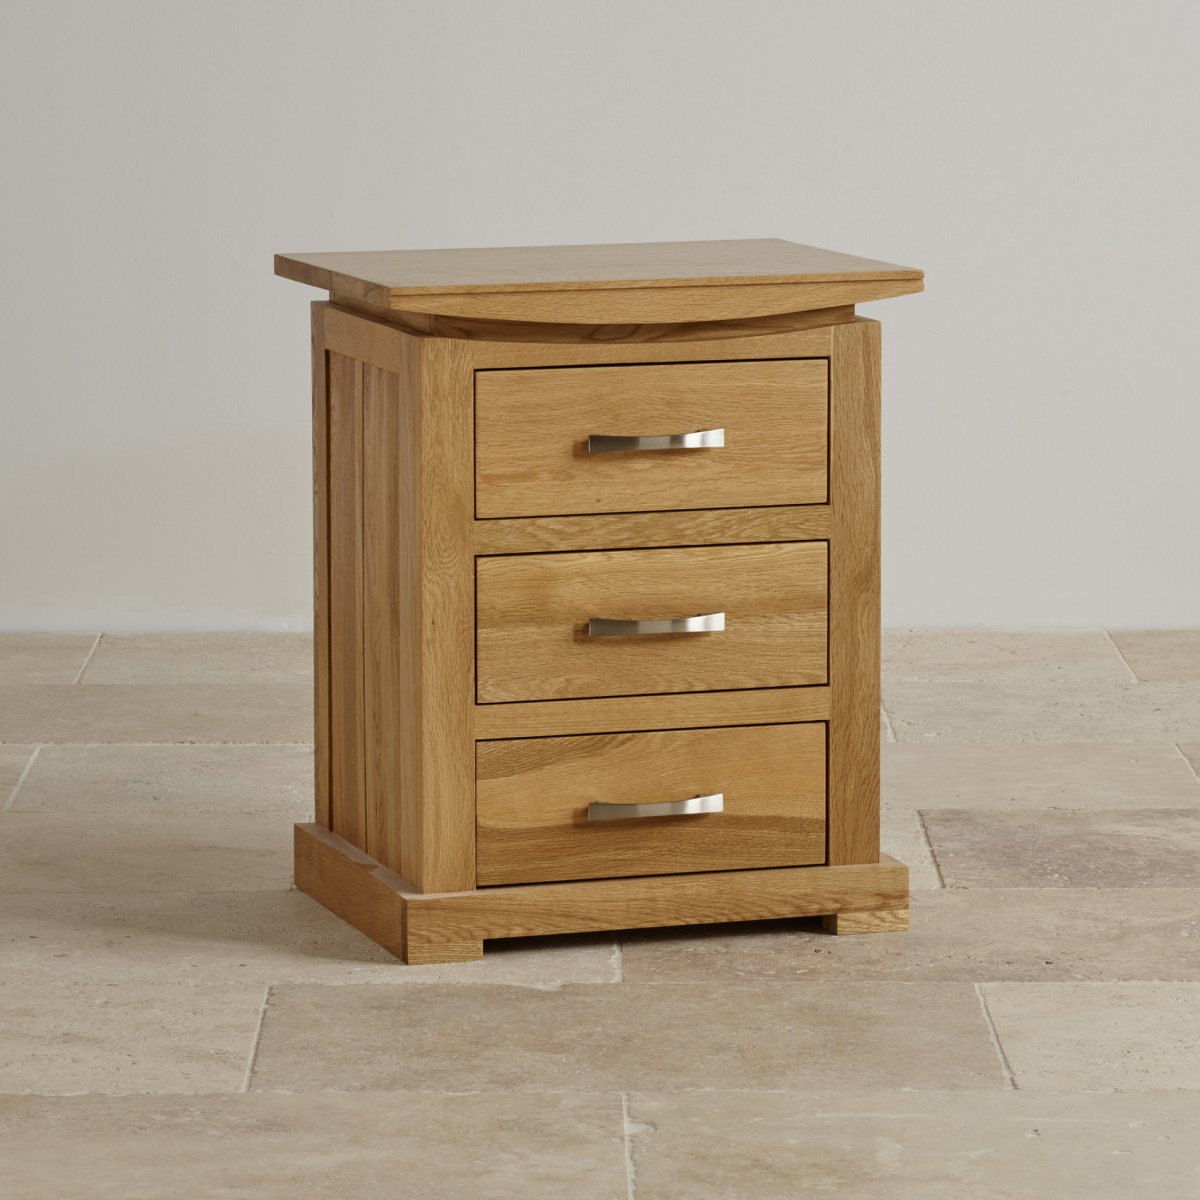 Tokyo 3 drawer bedside table in solid oak oak furniture land for Solid oak furniture